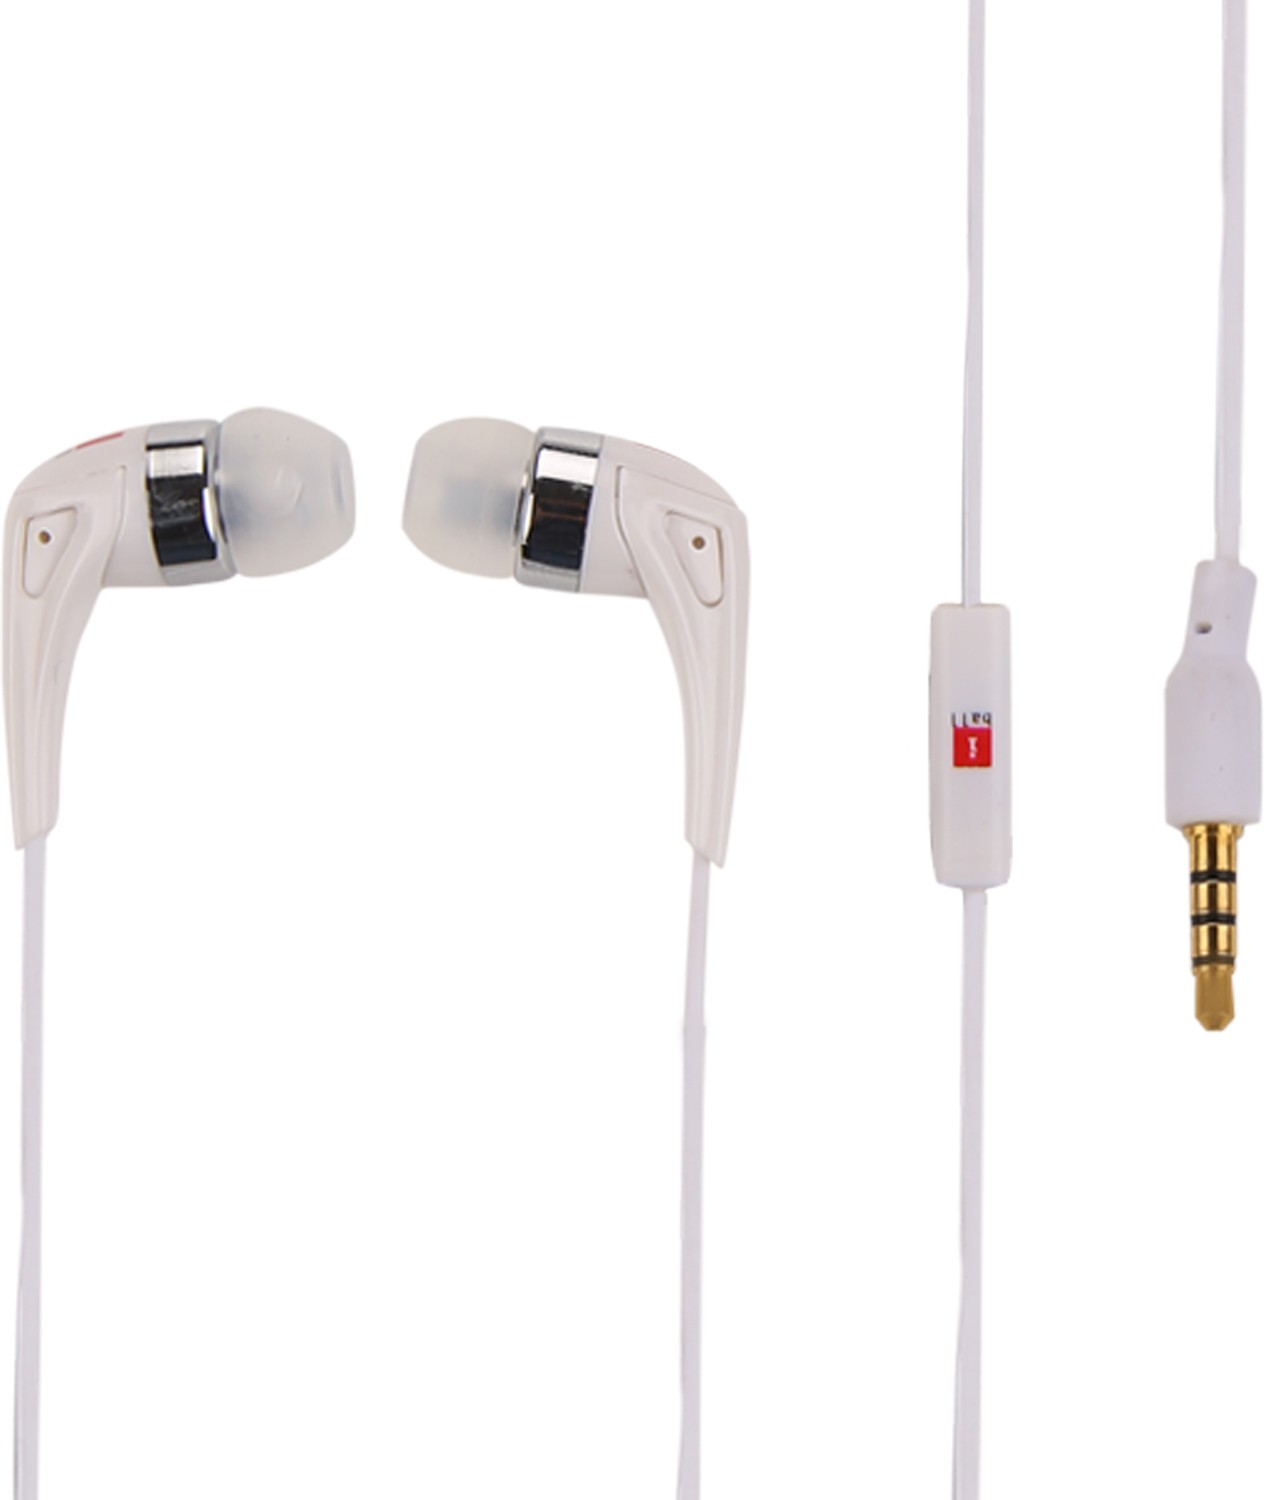 Iball Spark A6 Wired Headset With Mic(White)